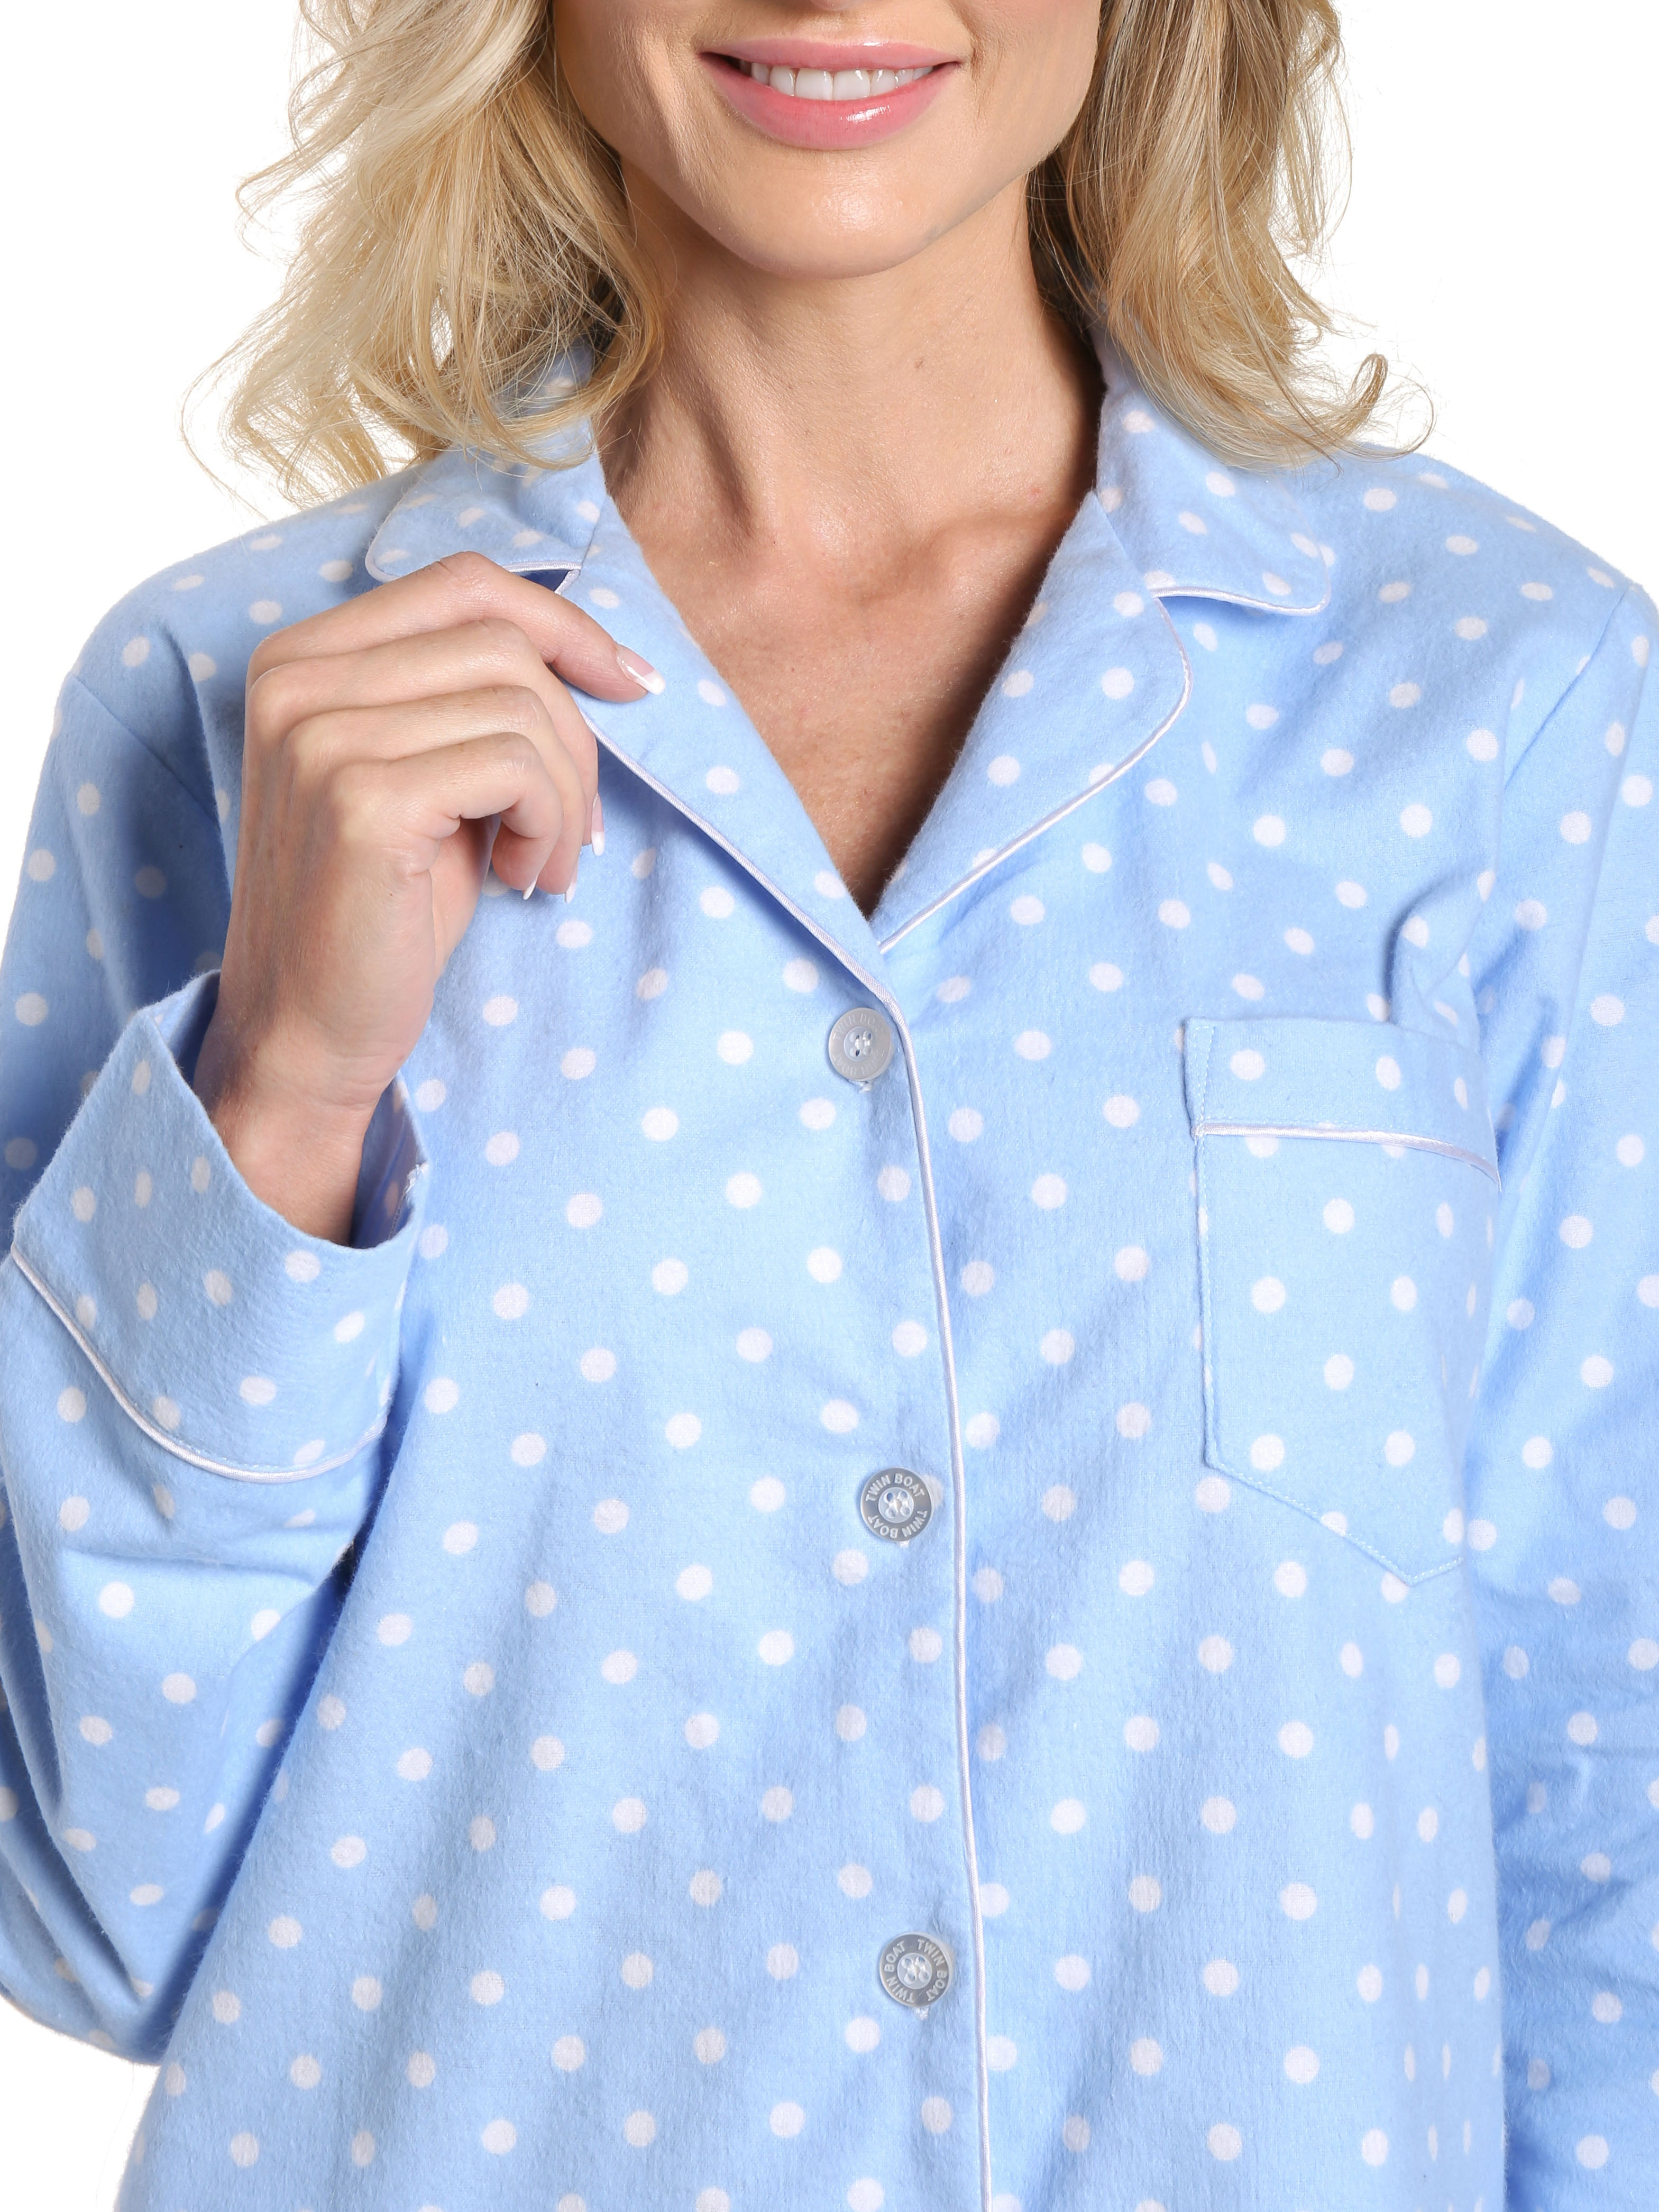 Dots Diva Blue-White